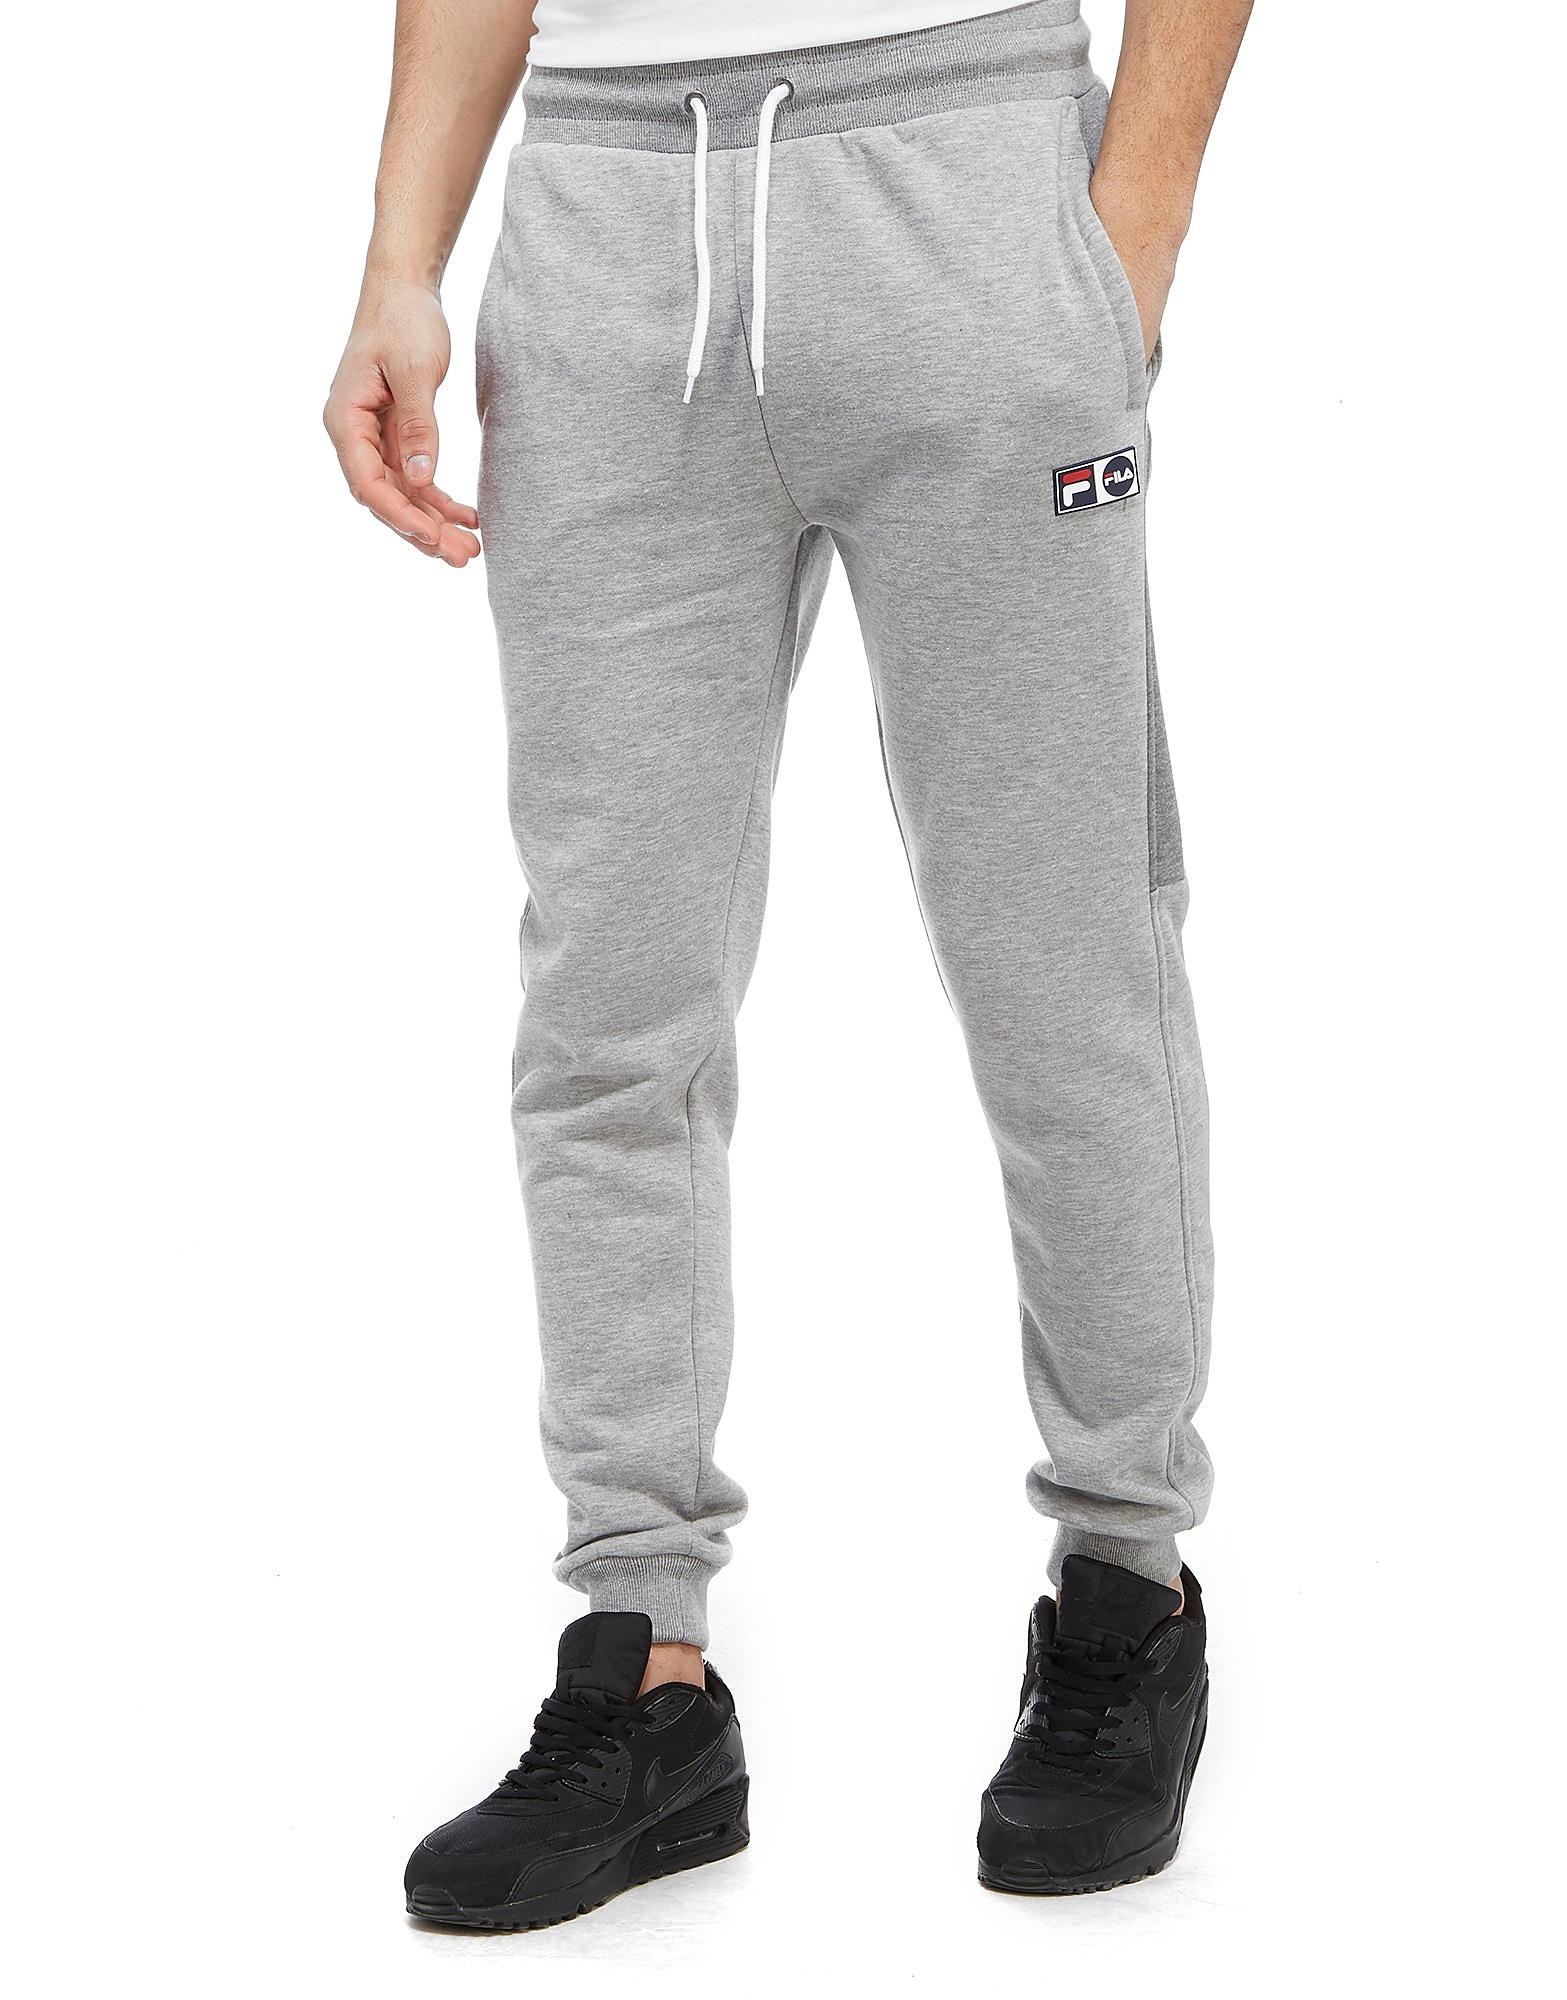 Image of   Fila Fosteroni Fleece Pants - Only at JD